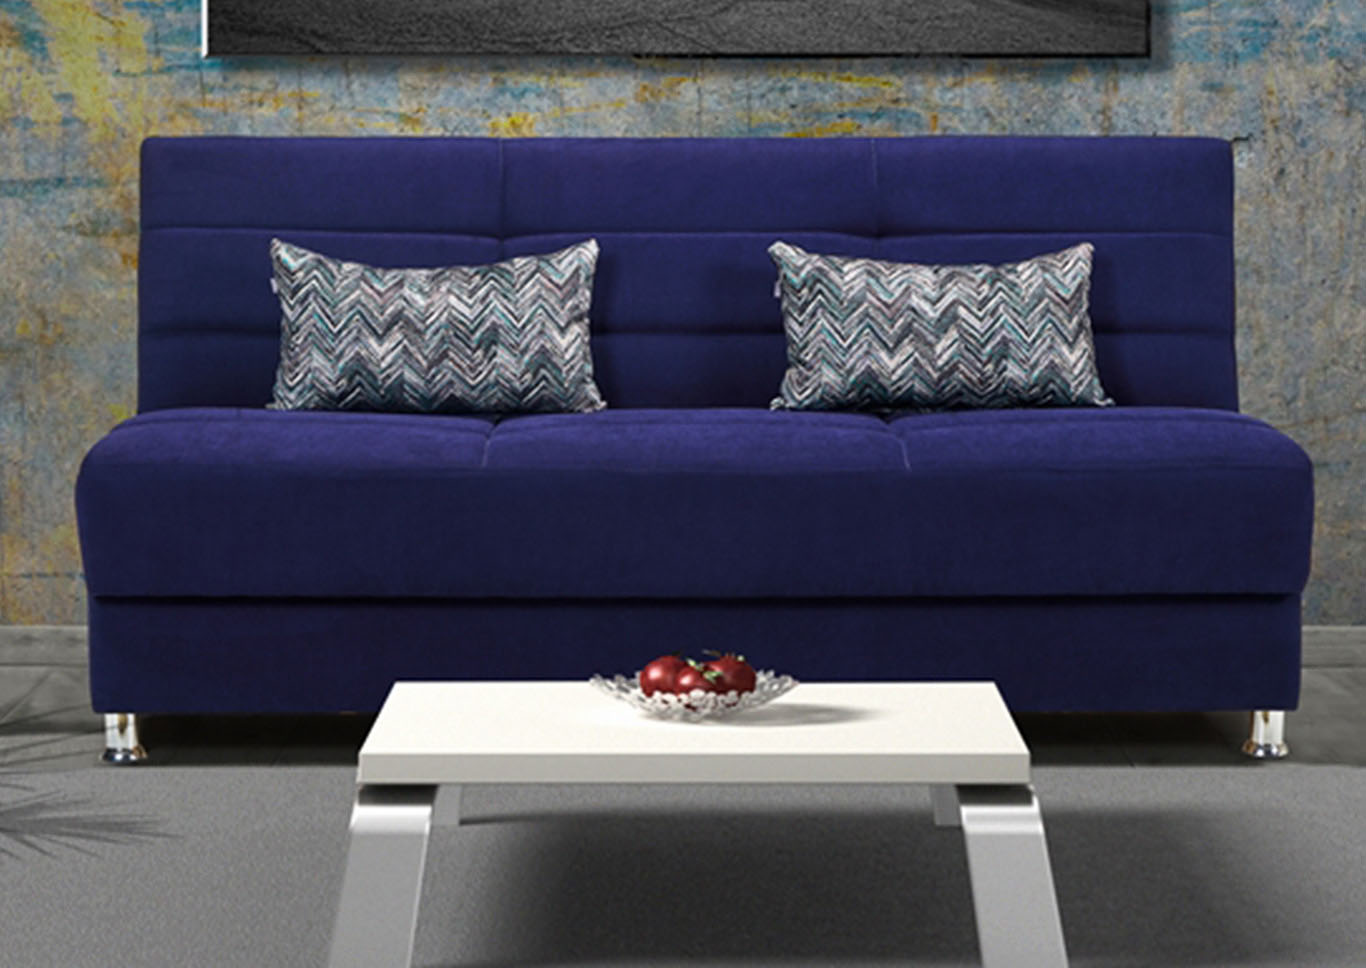 Rainbow Blue Chenille Sofabed,CasaMode Functional Furniture